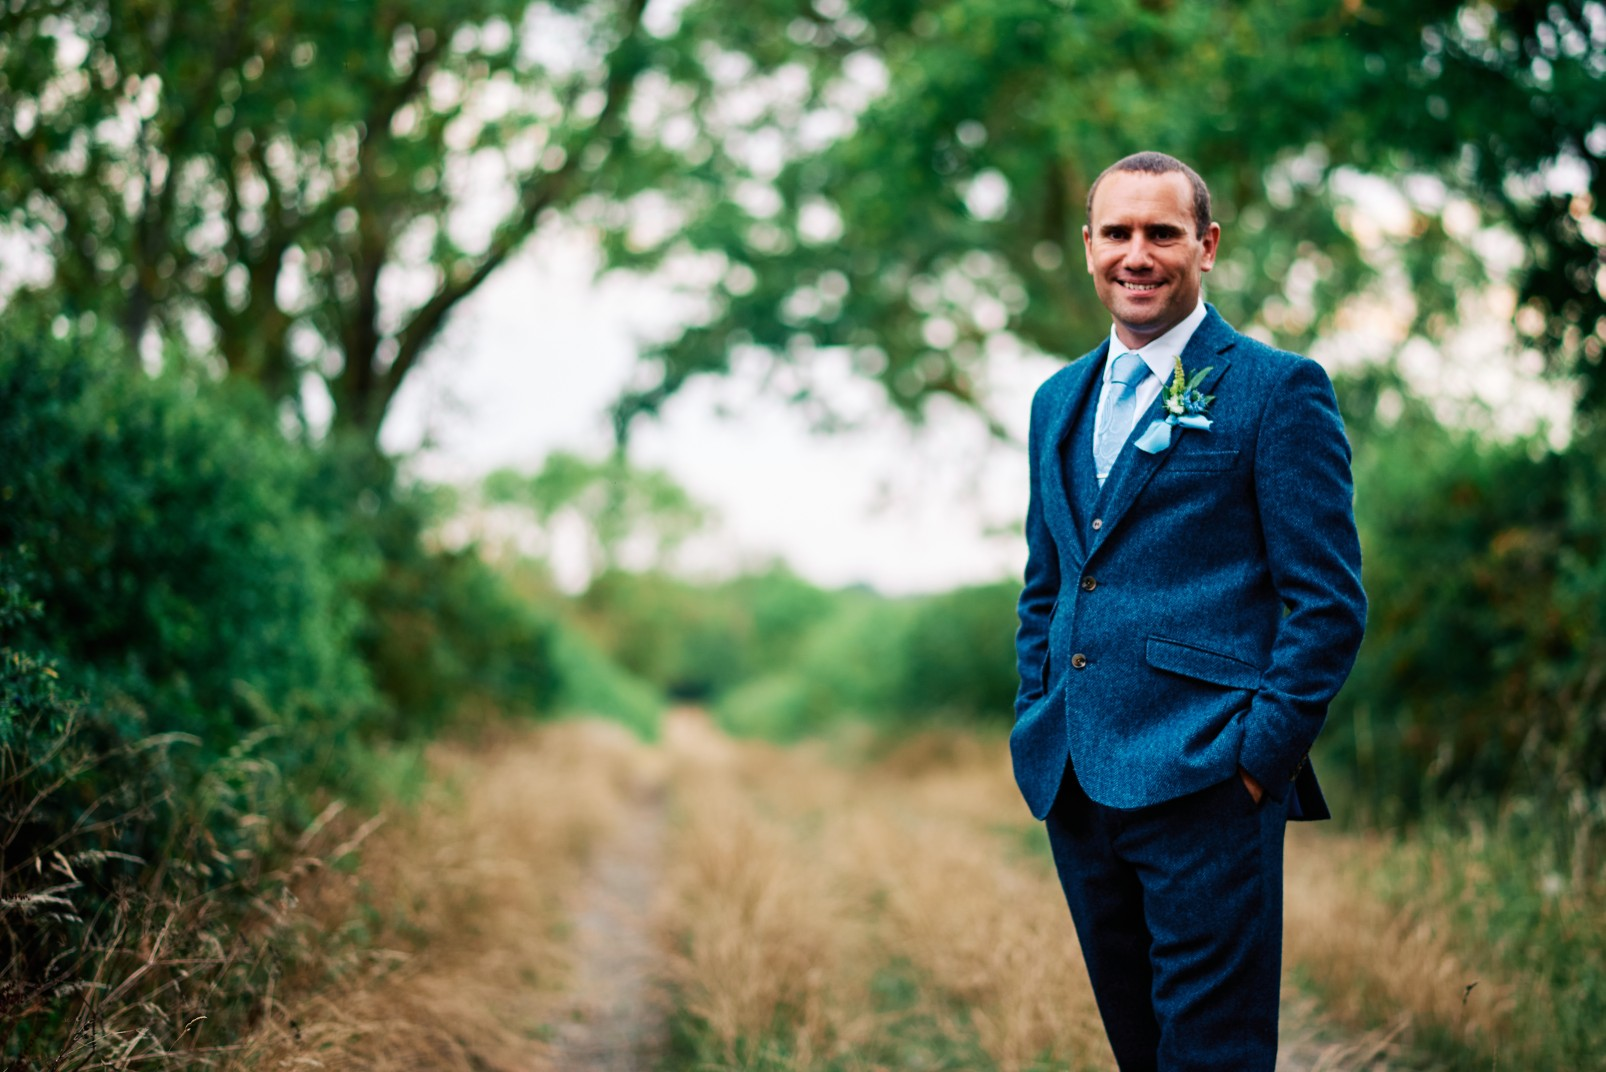 nhs wedding - paramedic wedding - blue and gold wedding - outdoor wedding - micro wedding - surprise wedding - blue grooms suit